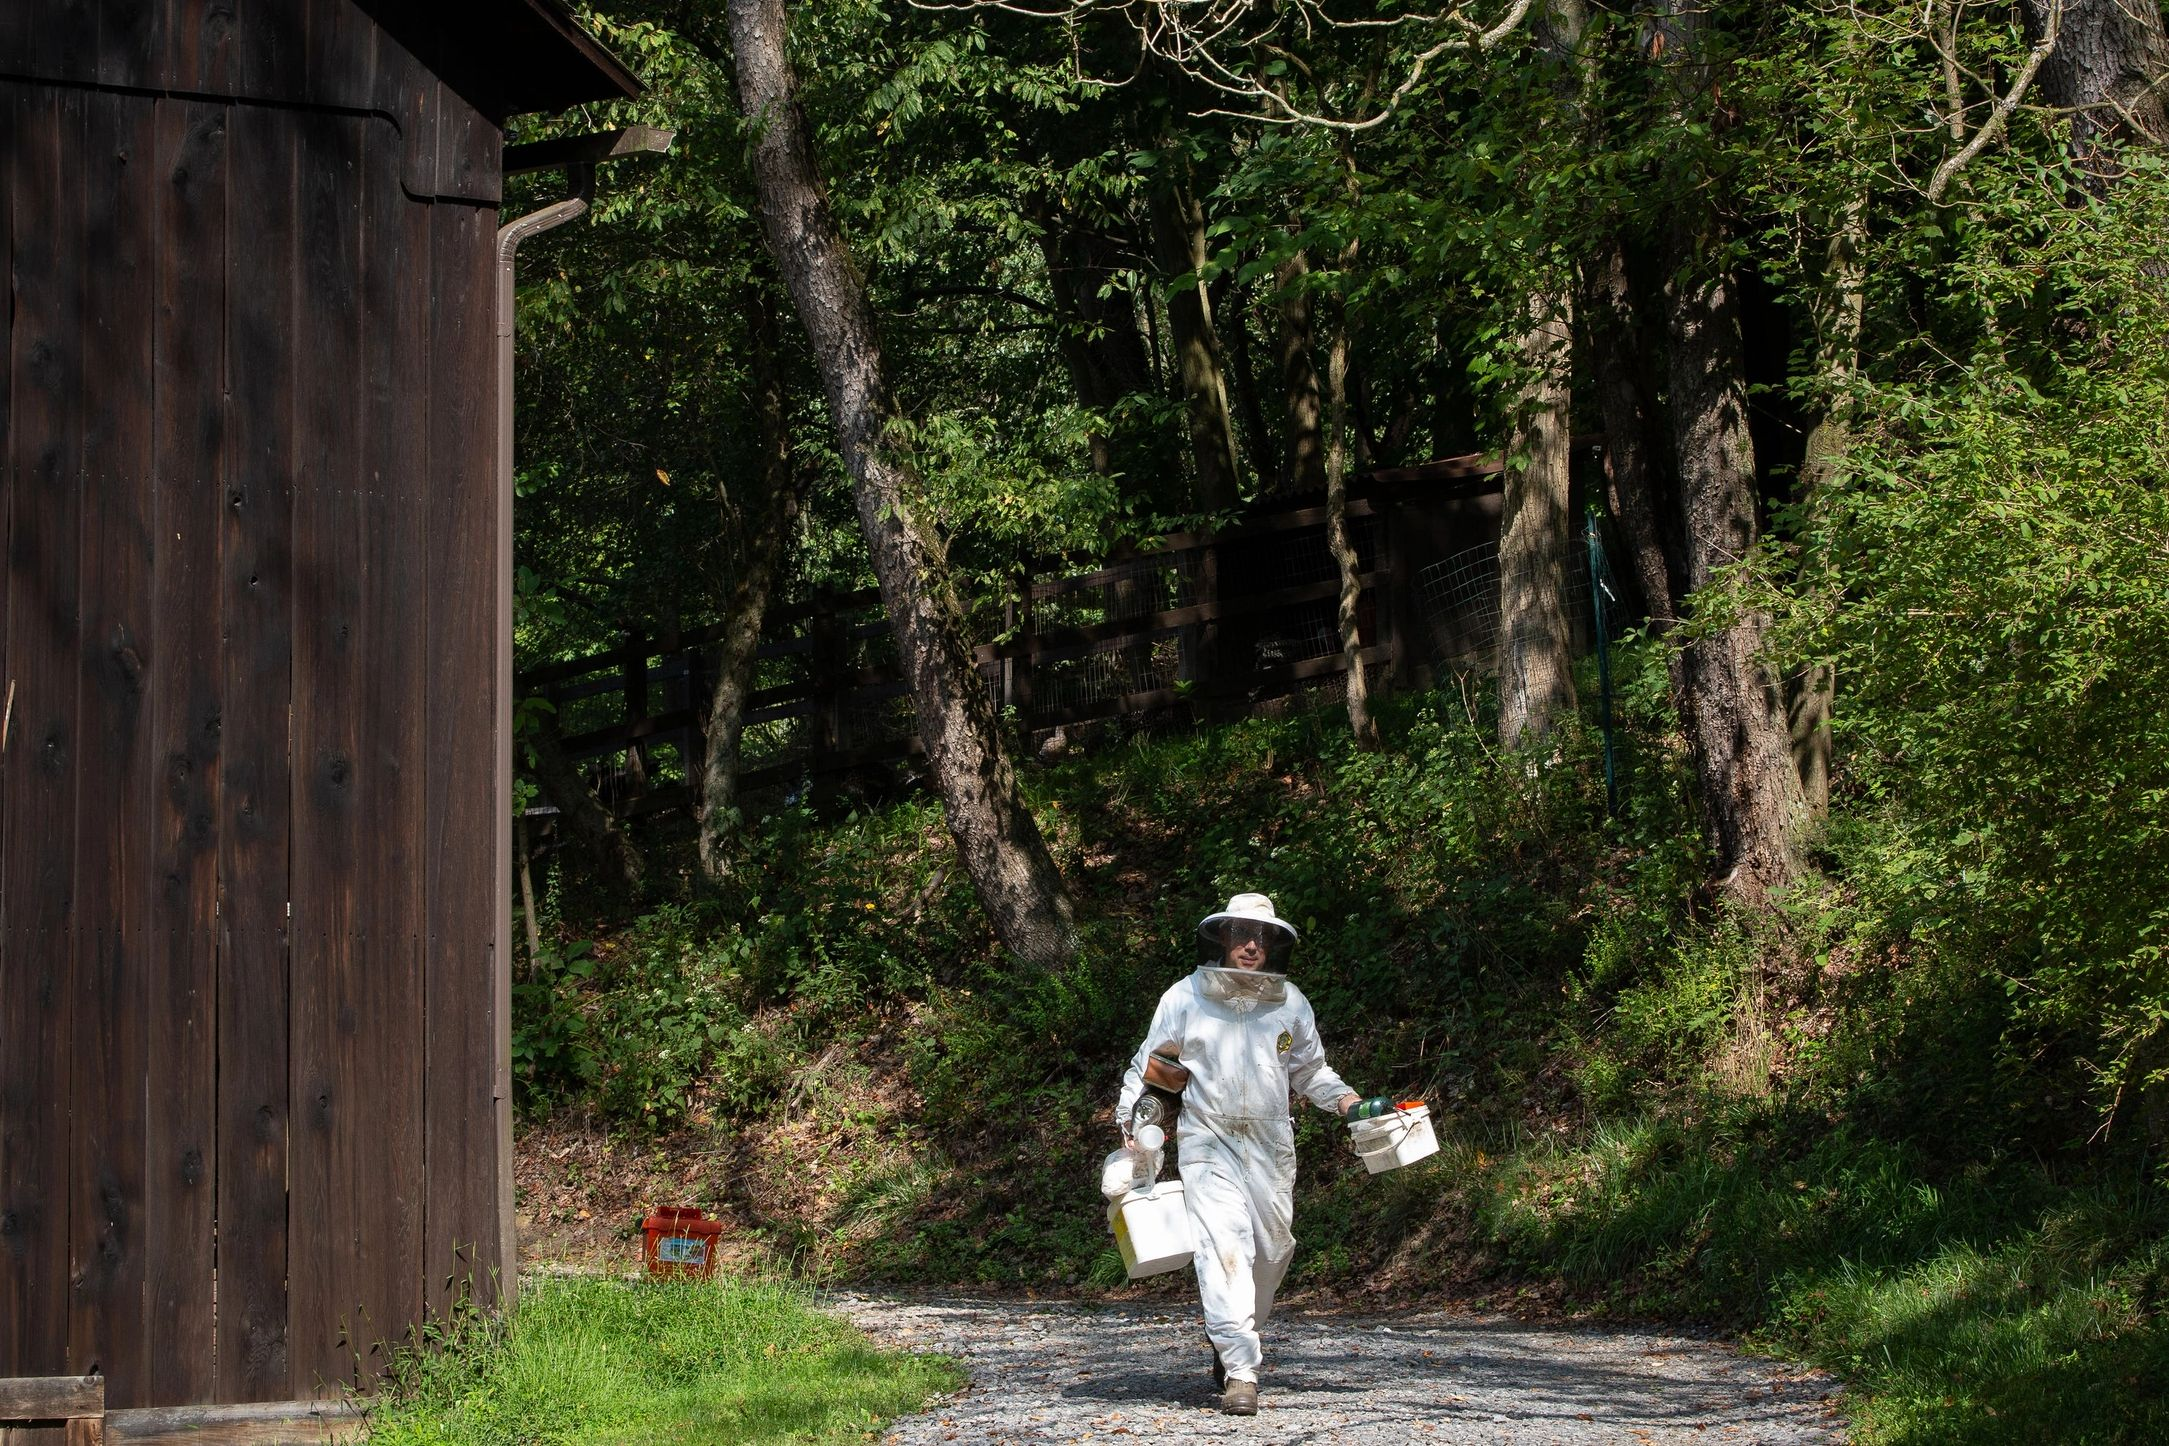 Joe Zgurzynski carries beekeeping equipment down the gravel path next to the barn.